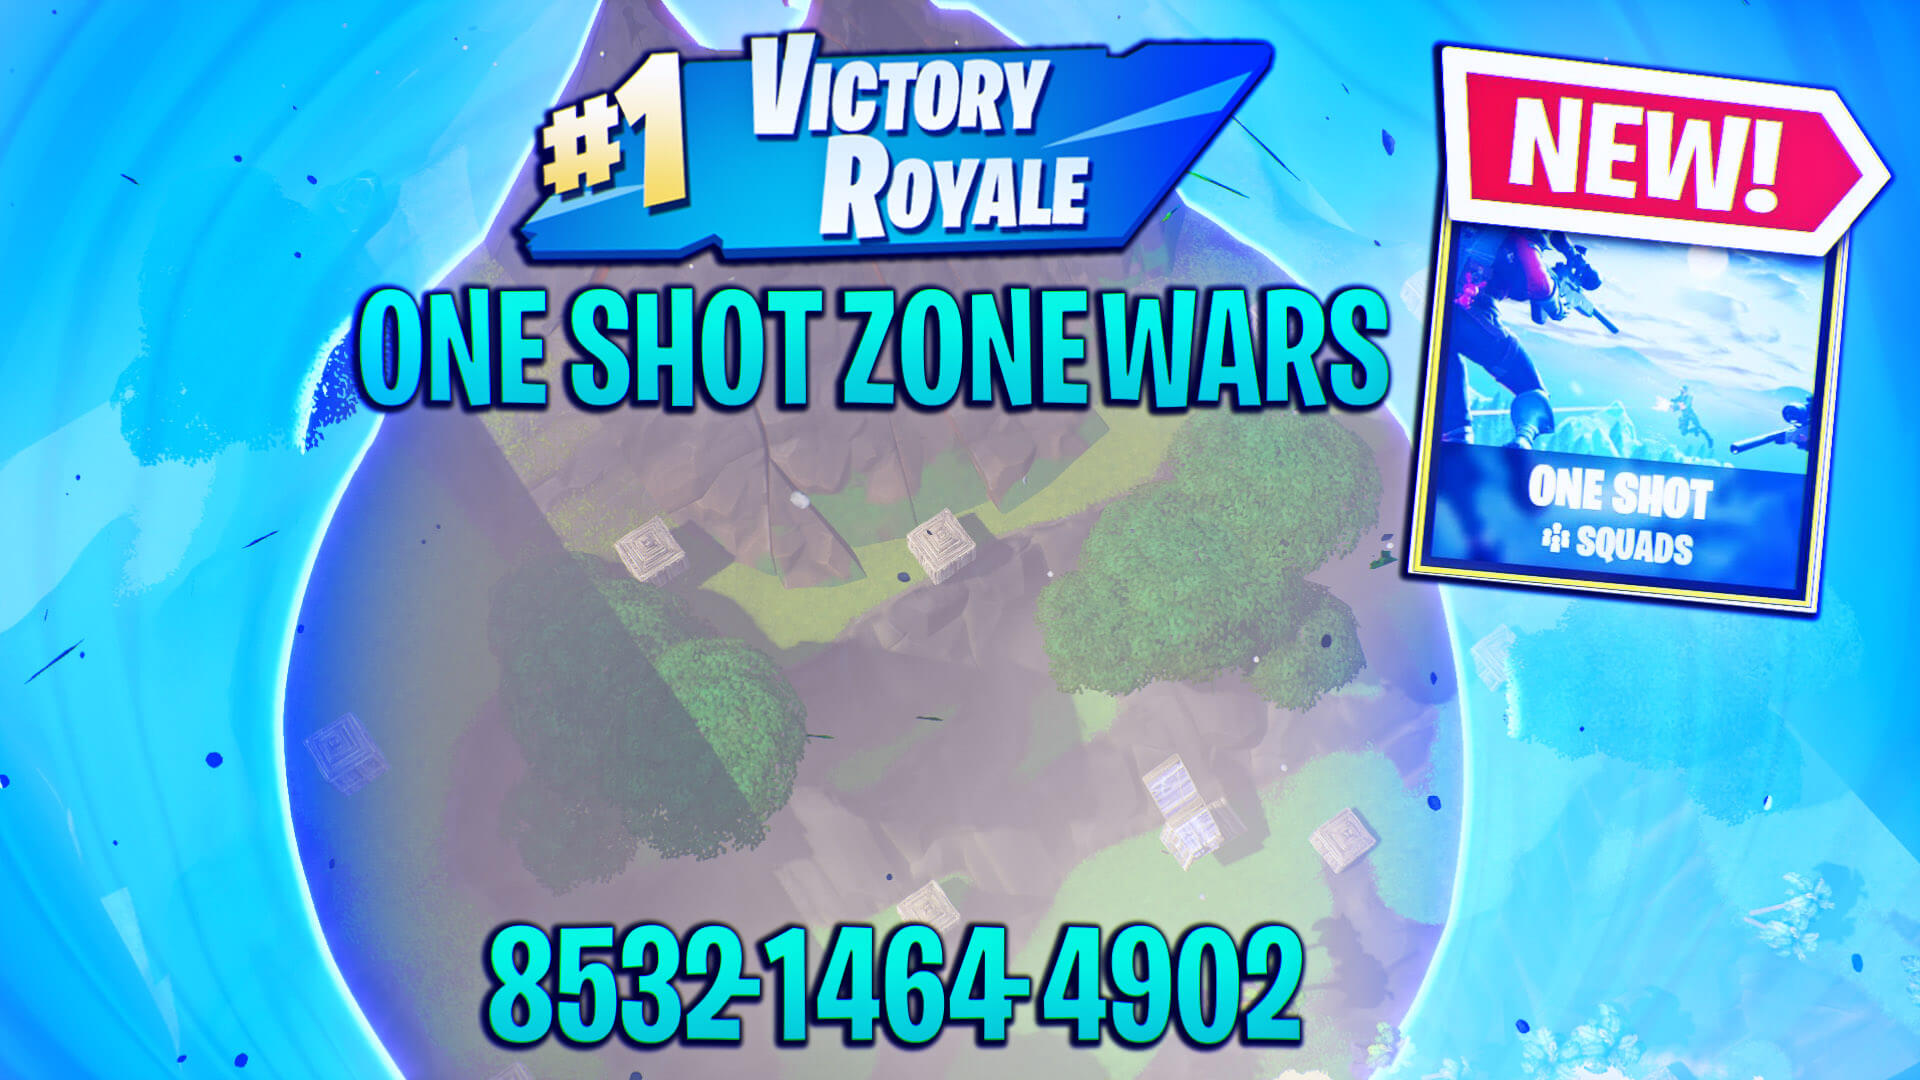 ONE SHOT ZONE WARS BY ZYREMS